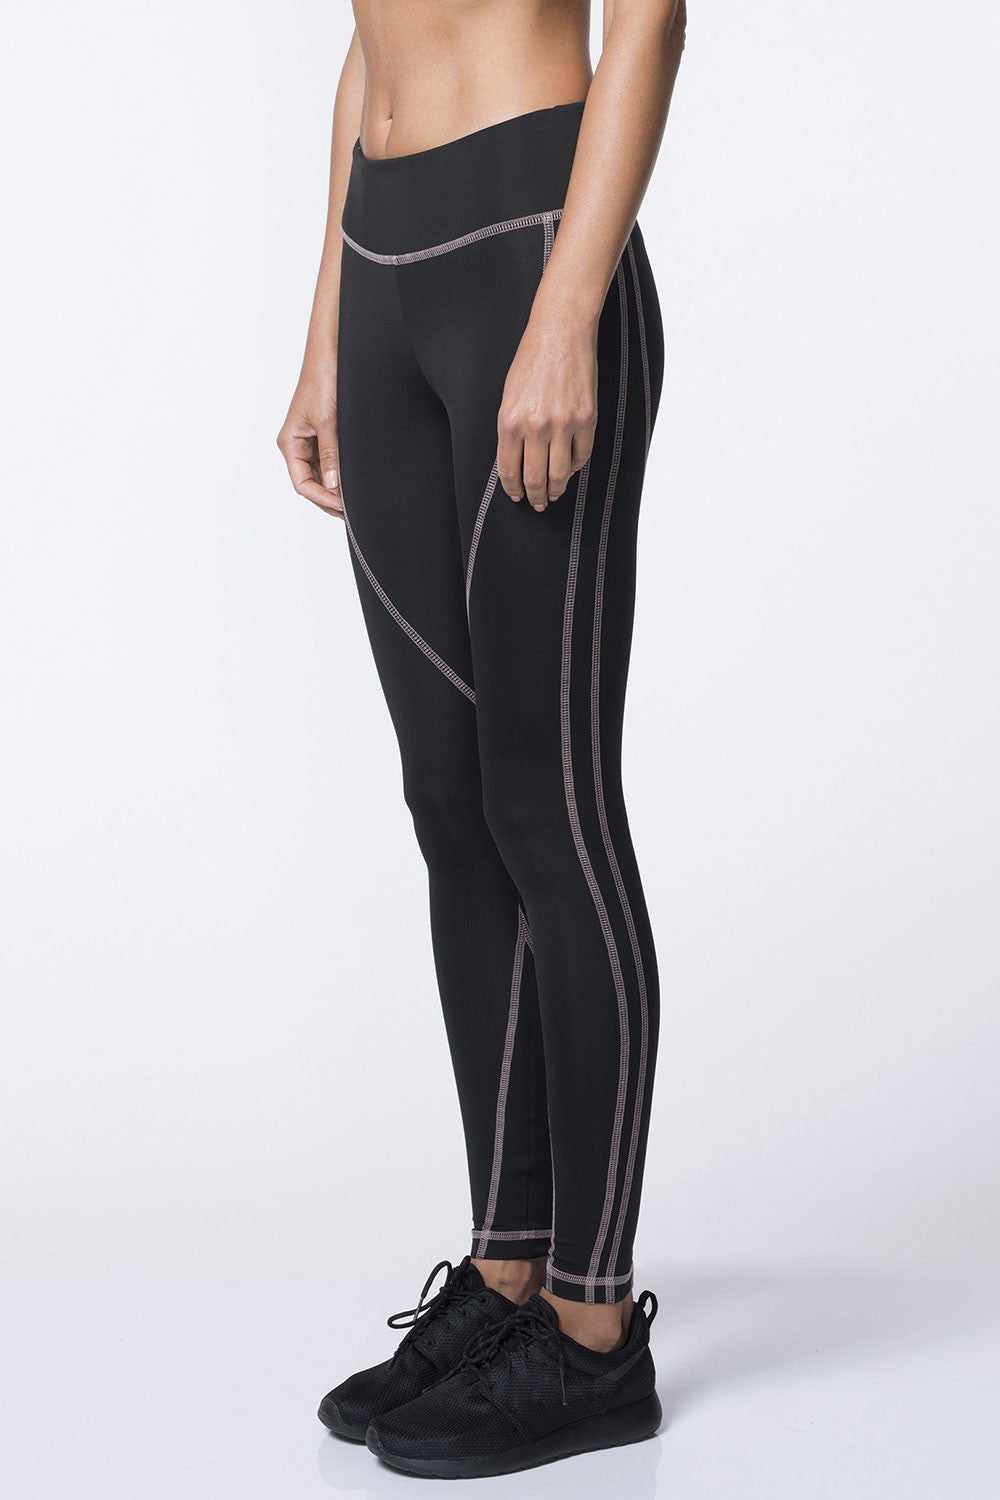 Koral Stitch Legging - Sculptique